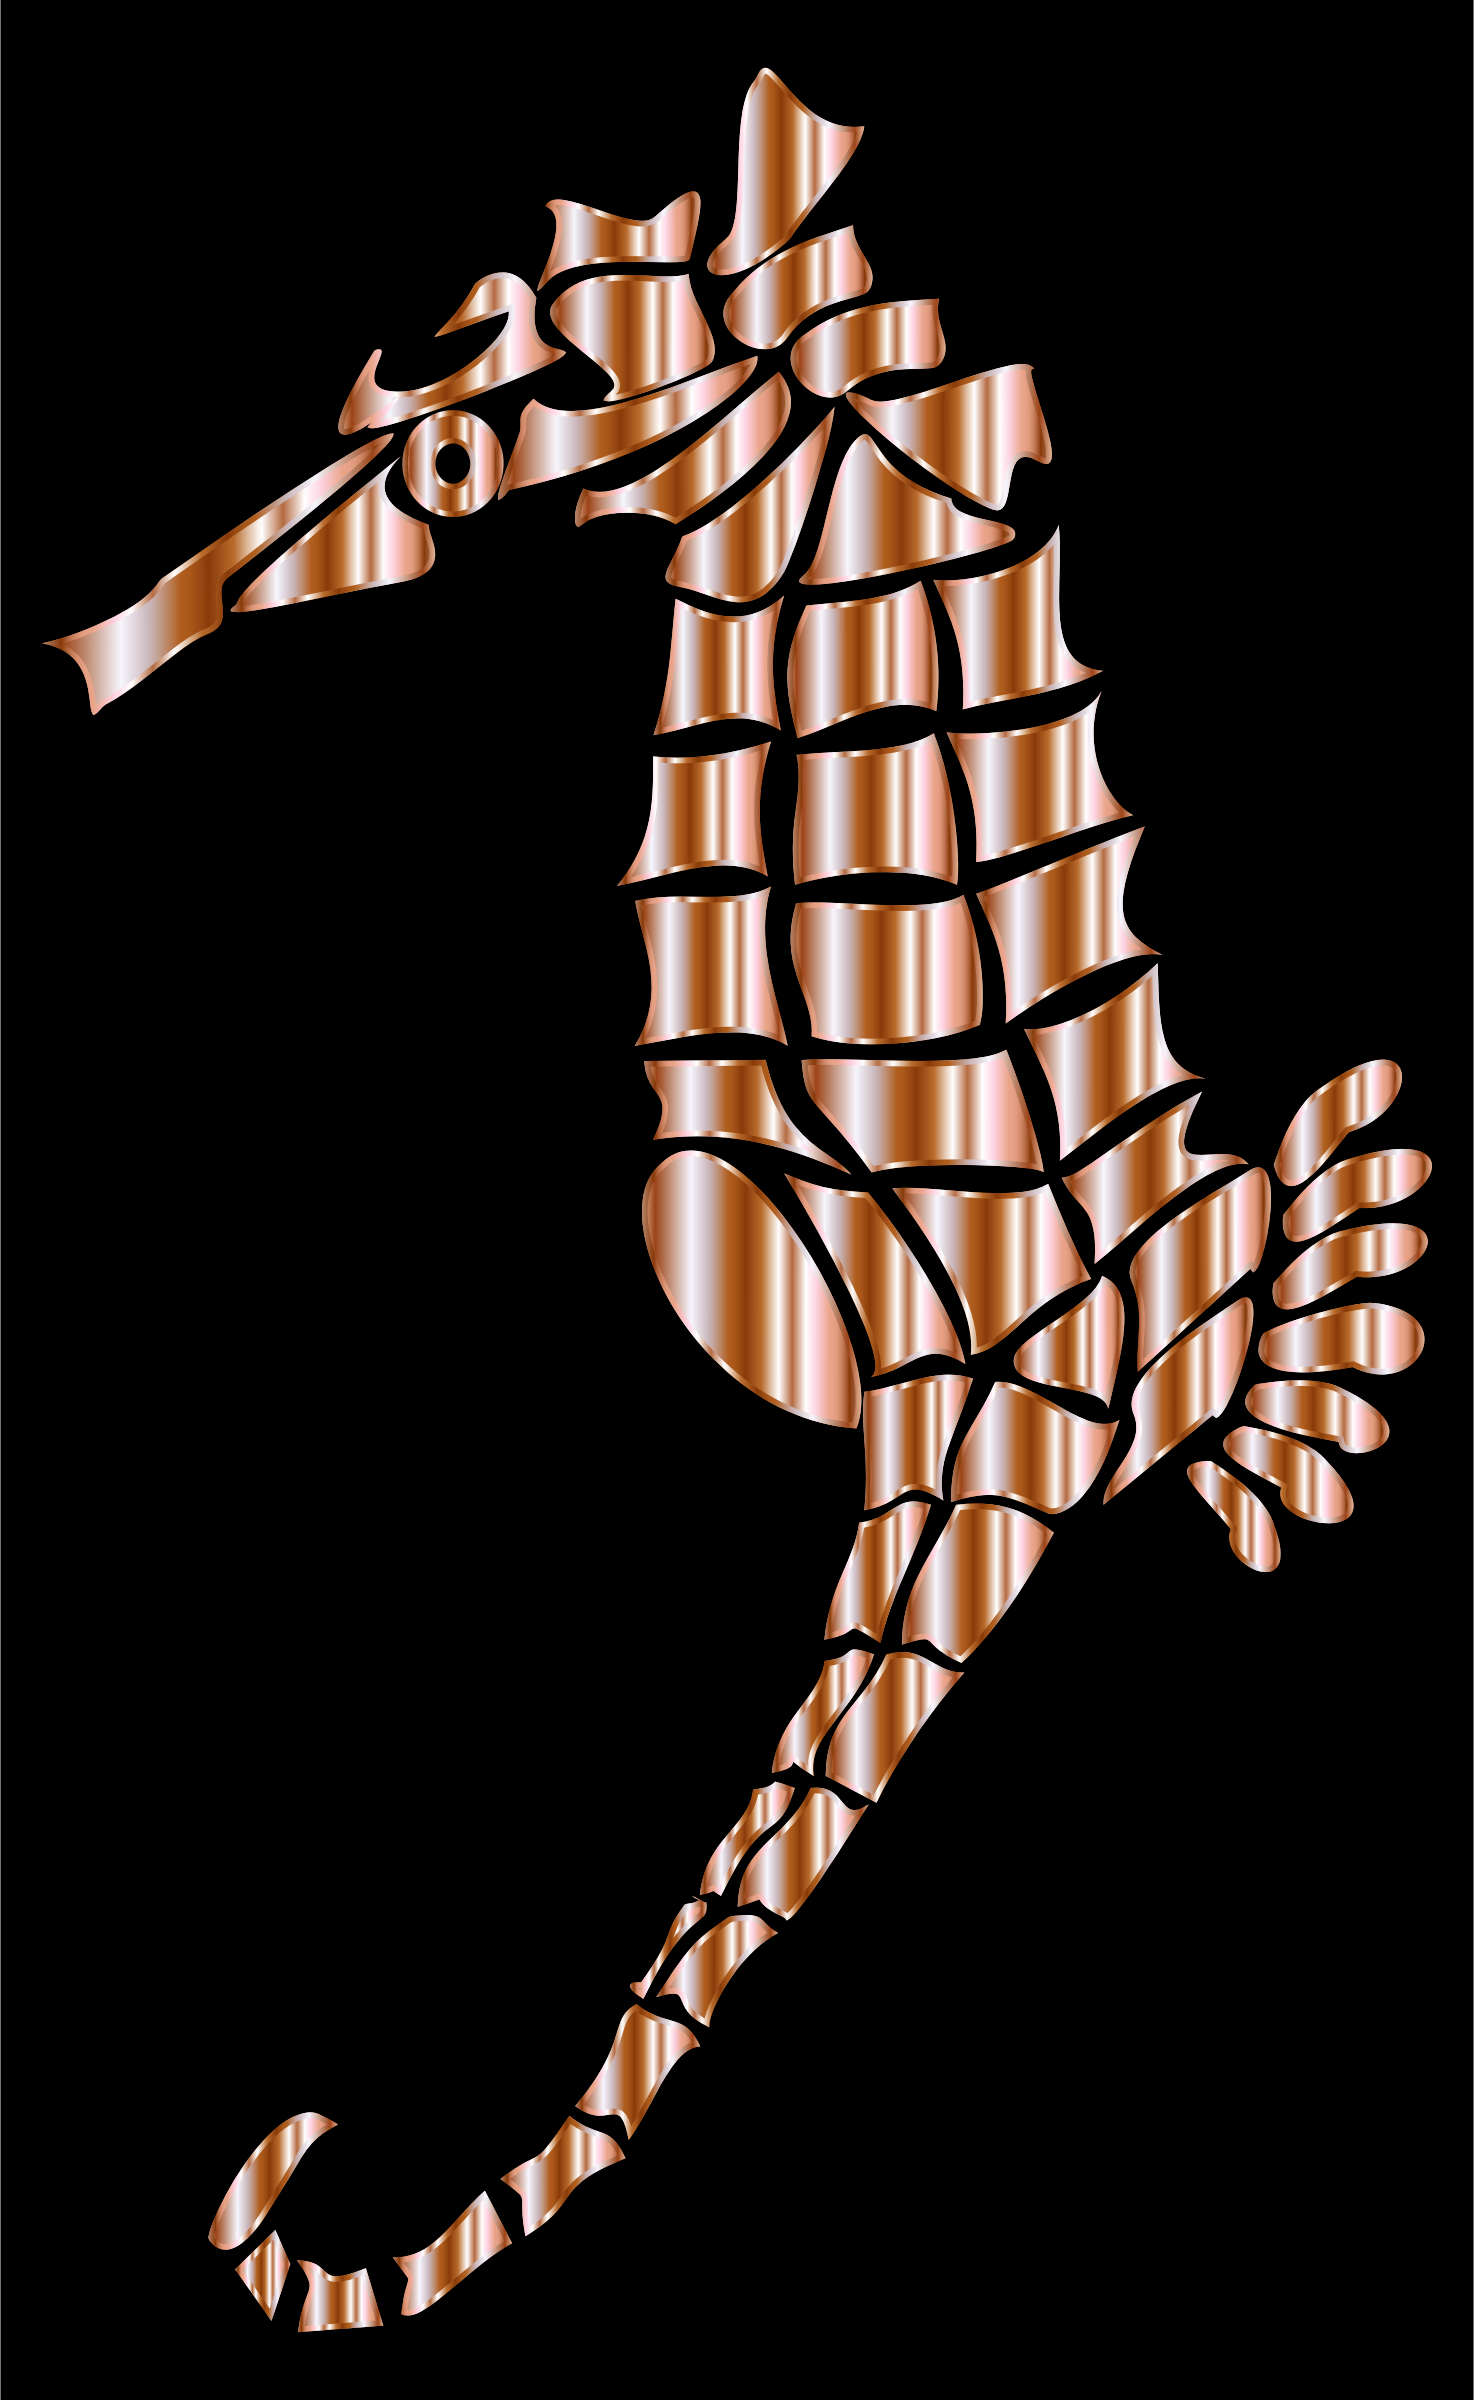 Mother Of Pearl Stylized Seahorse Silhouette by GDJ